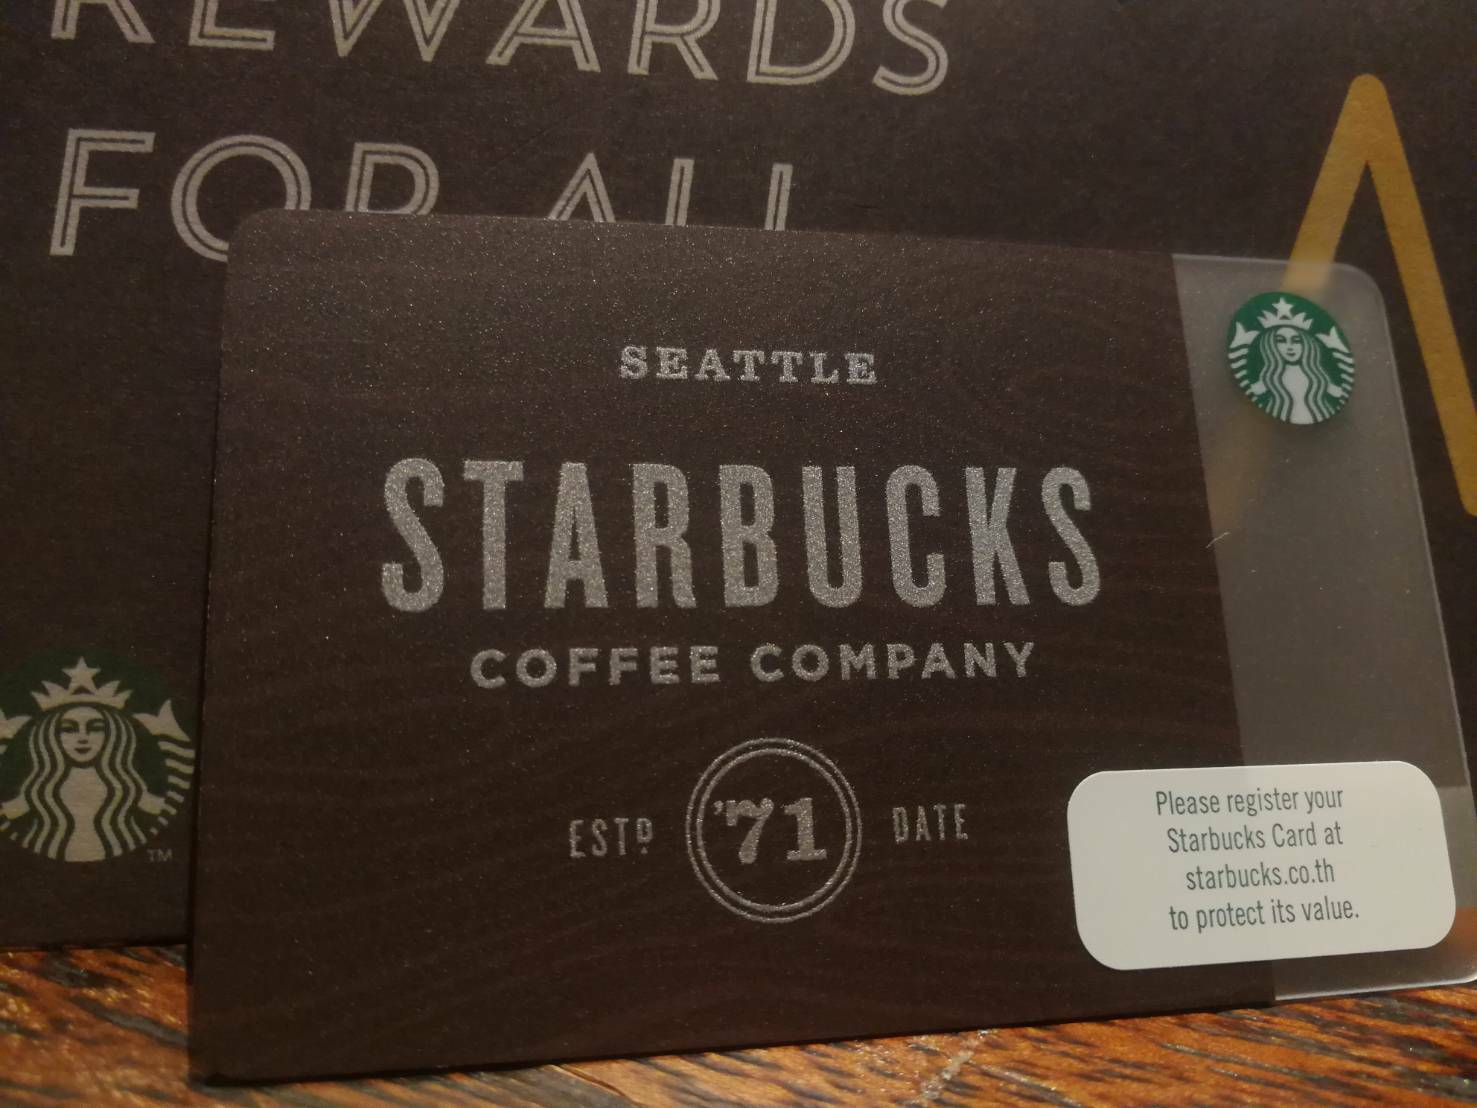 starbucks online dating What are your thoughts on the new 1 dollar coffee at starbucks  have fun meeting singles and try out this online dating  starbucks 1 dollar coffee.